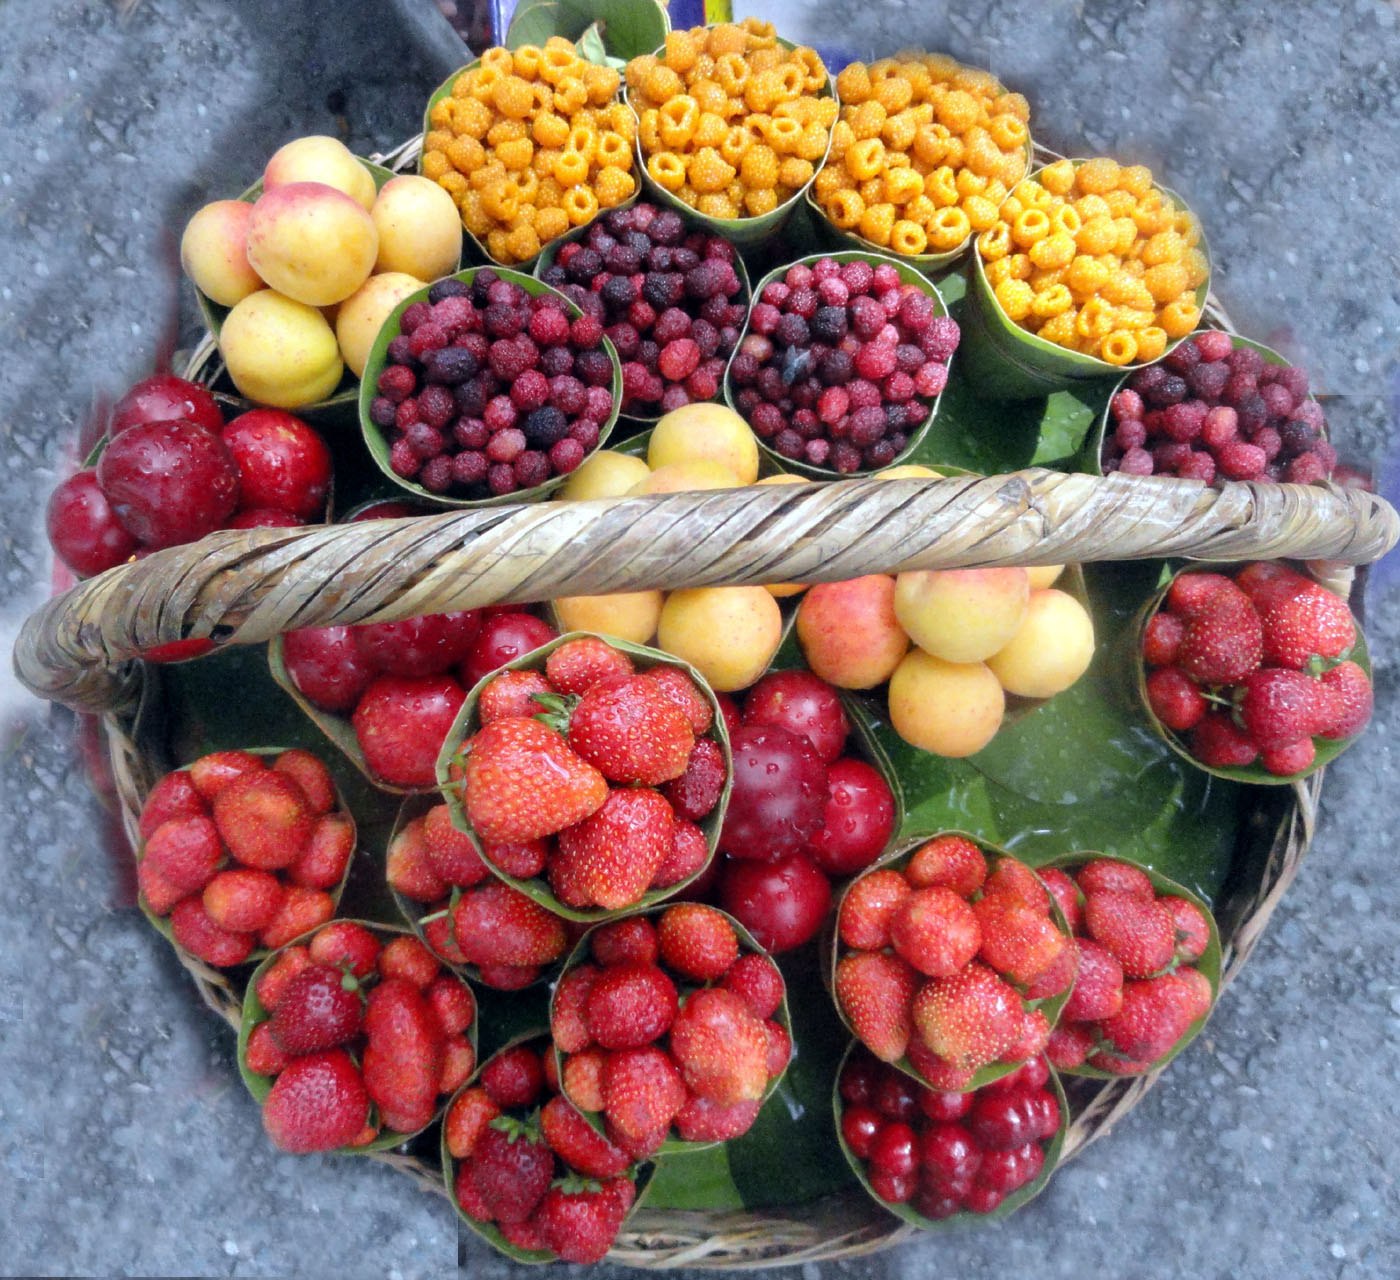 uttranchal fruit collection kafal imagesUttarakhand Culture And Food